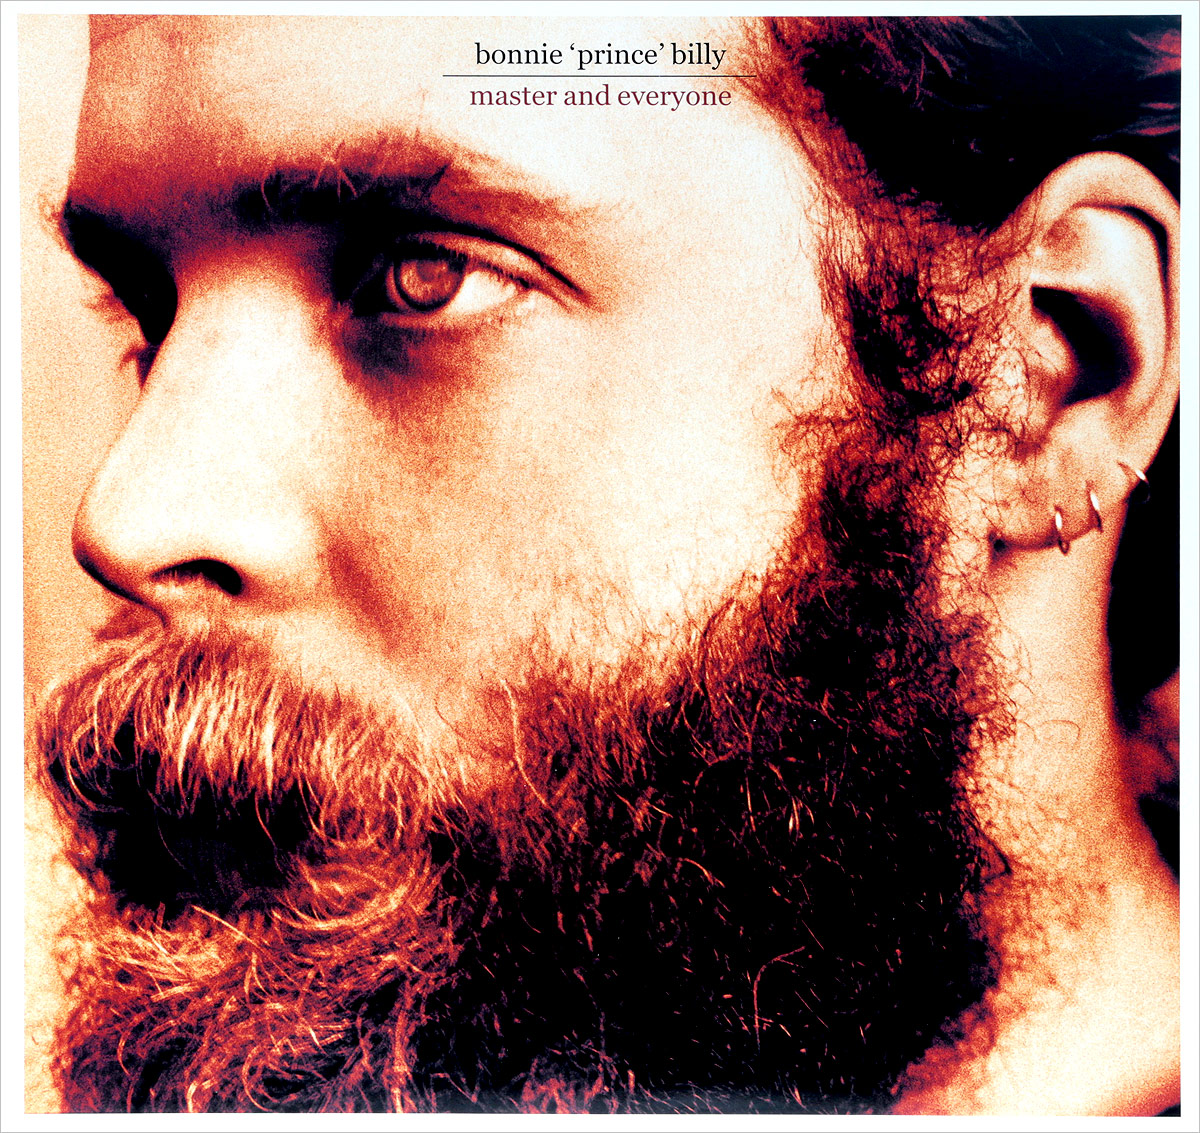 Уилл Олдхэм Bonnie Prince Billy. Master And Everyone (LP) james yorkston the cellardyke recording and wassailing society 2 lp